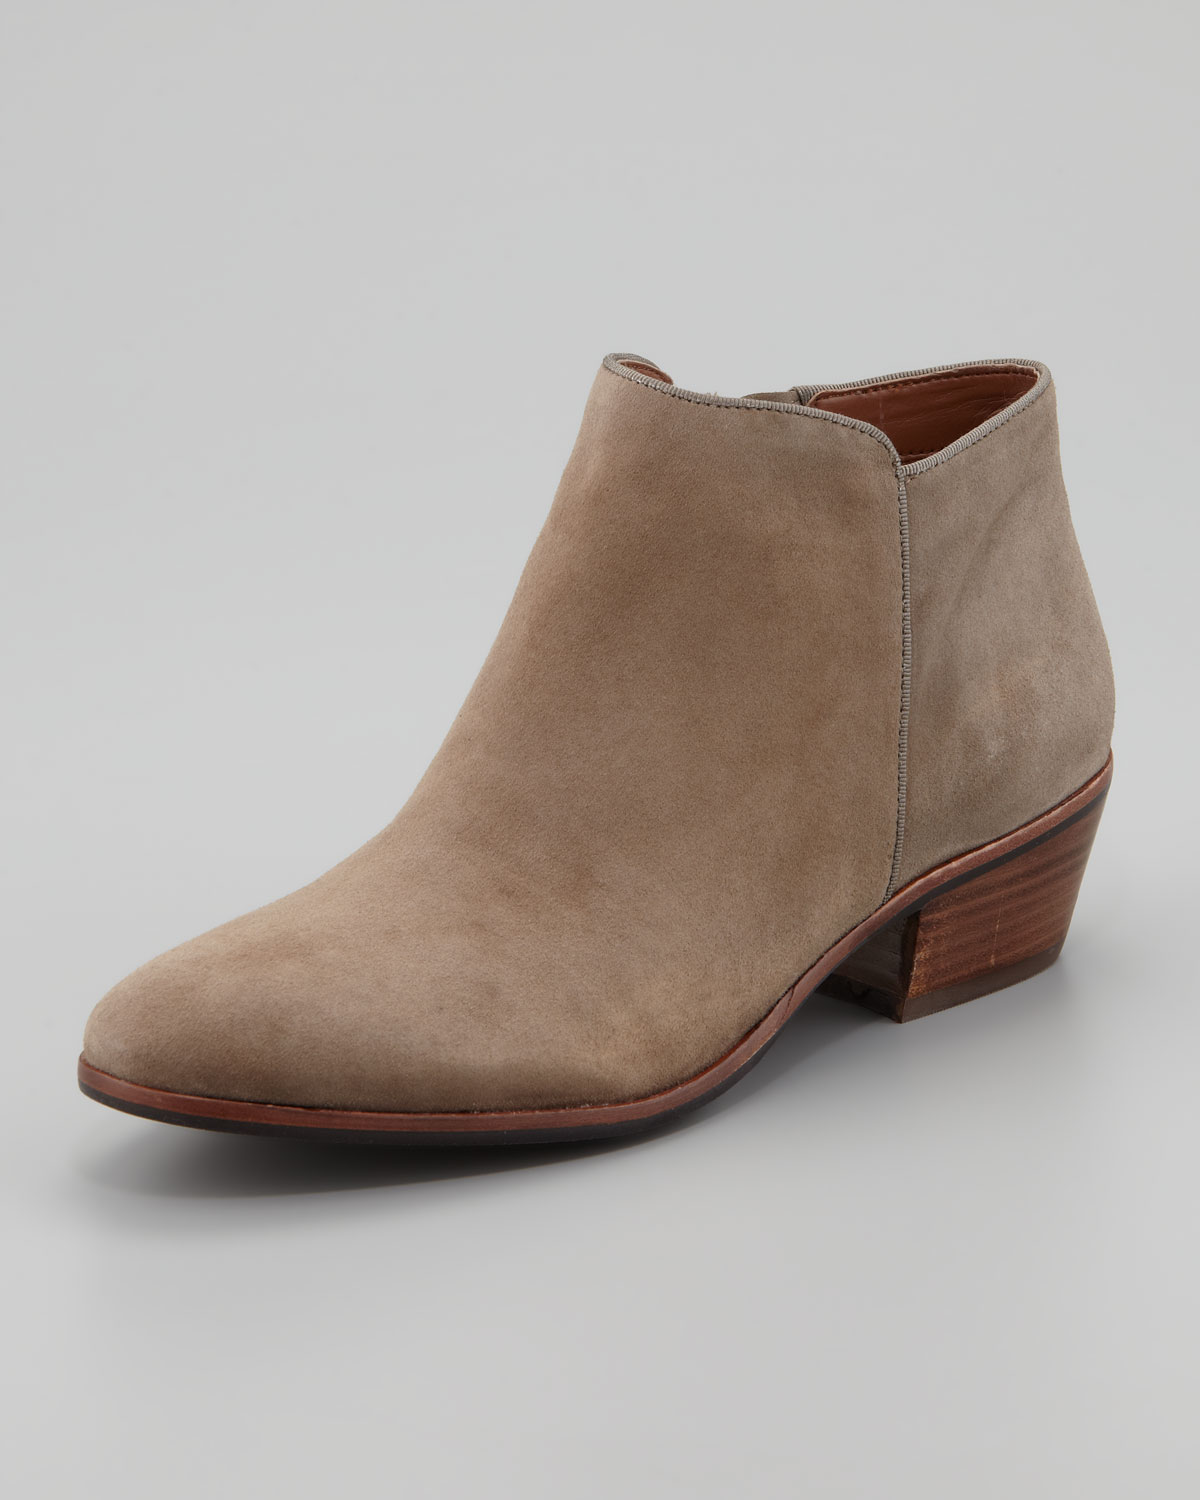 Tan Ankle Boots For Women WlB4hZDA